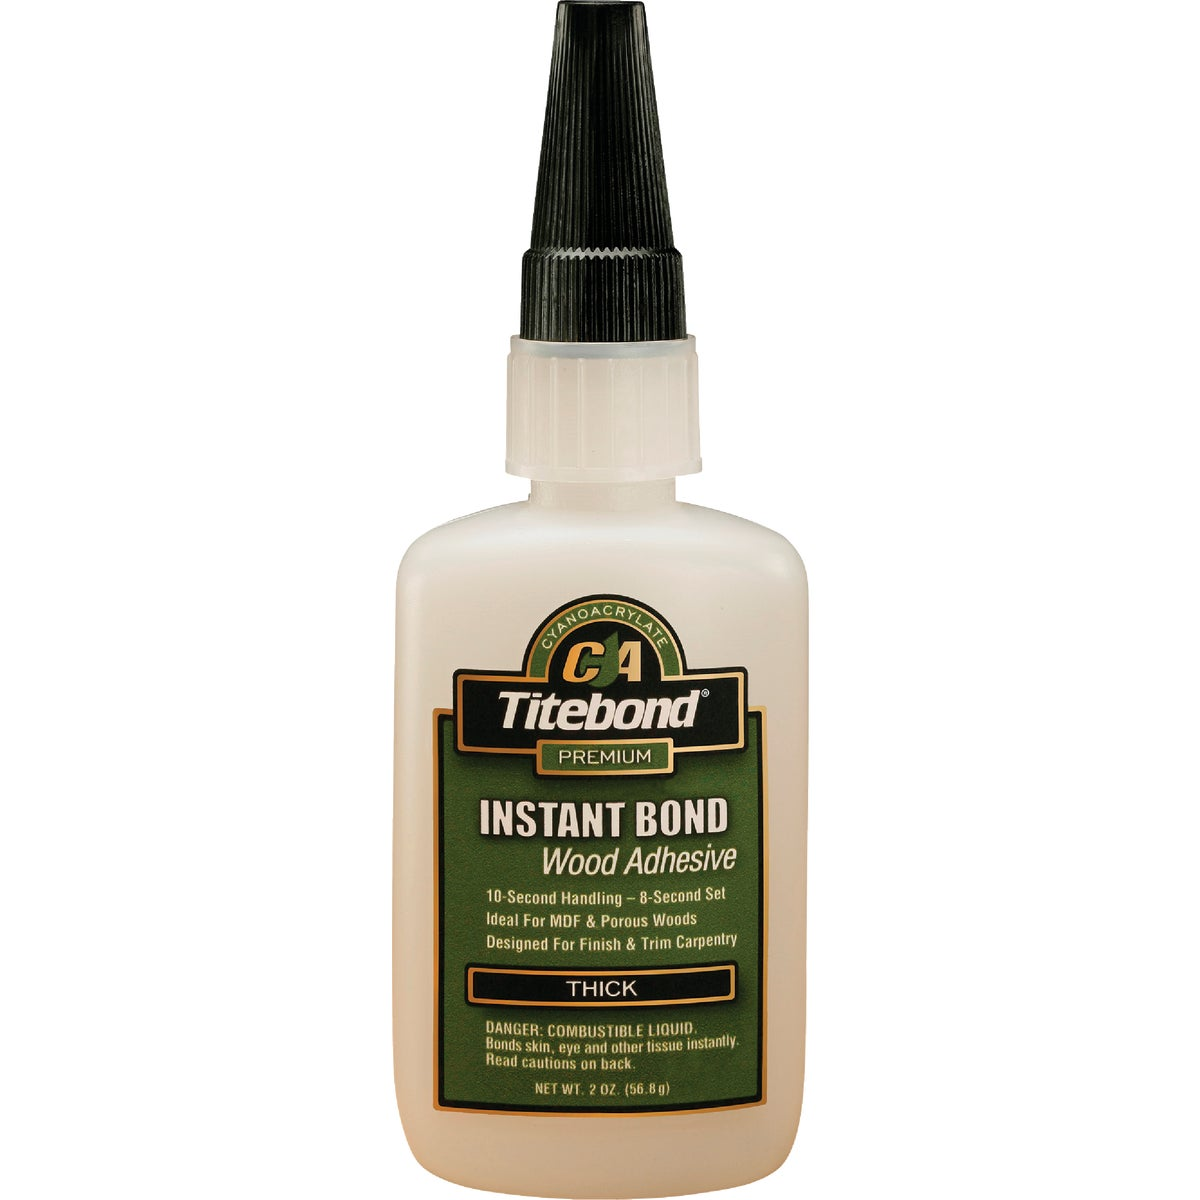 2OZ THICK INSTANT BOND